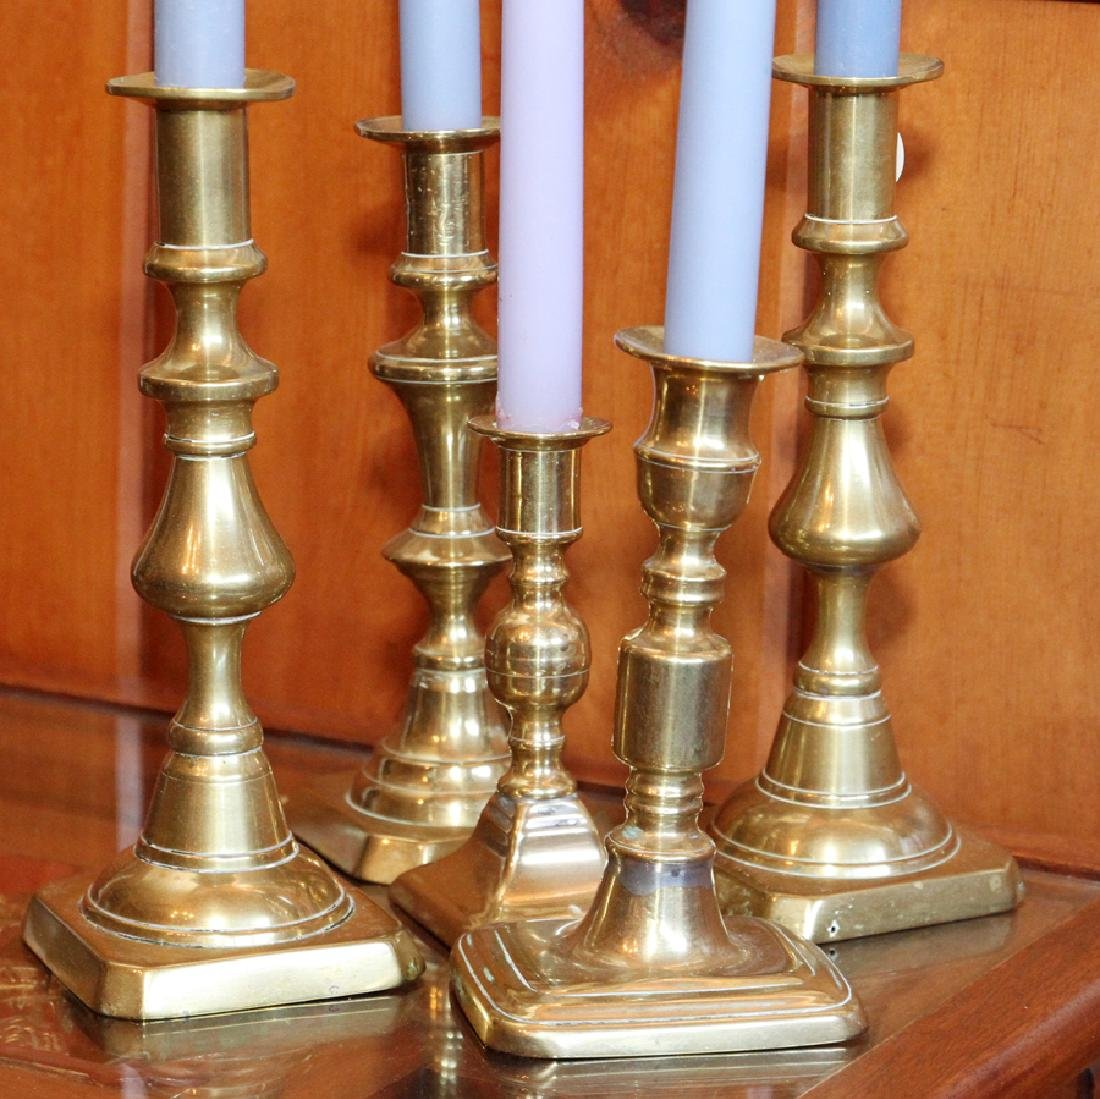 AMERICAN ANTIQUE BRASS CANDLESTICKS, 19TH.C. - 3